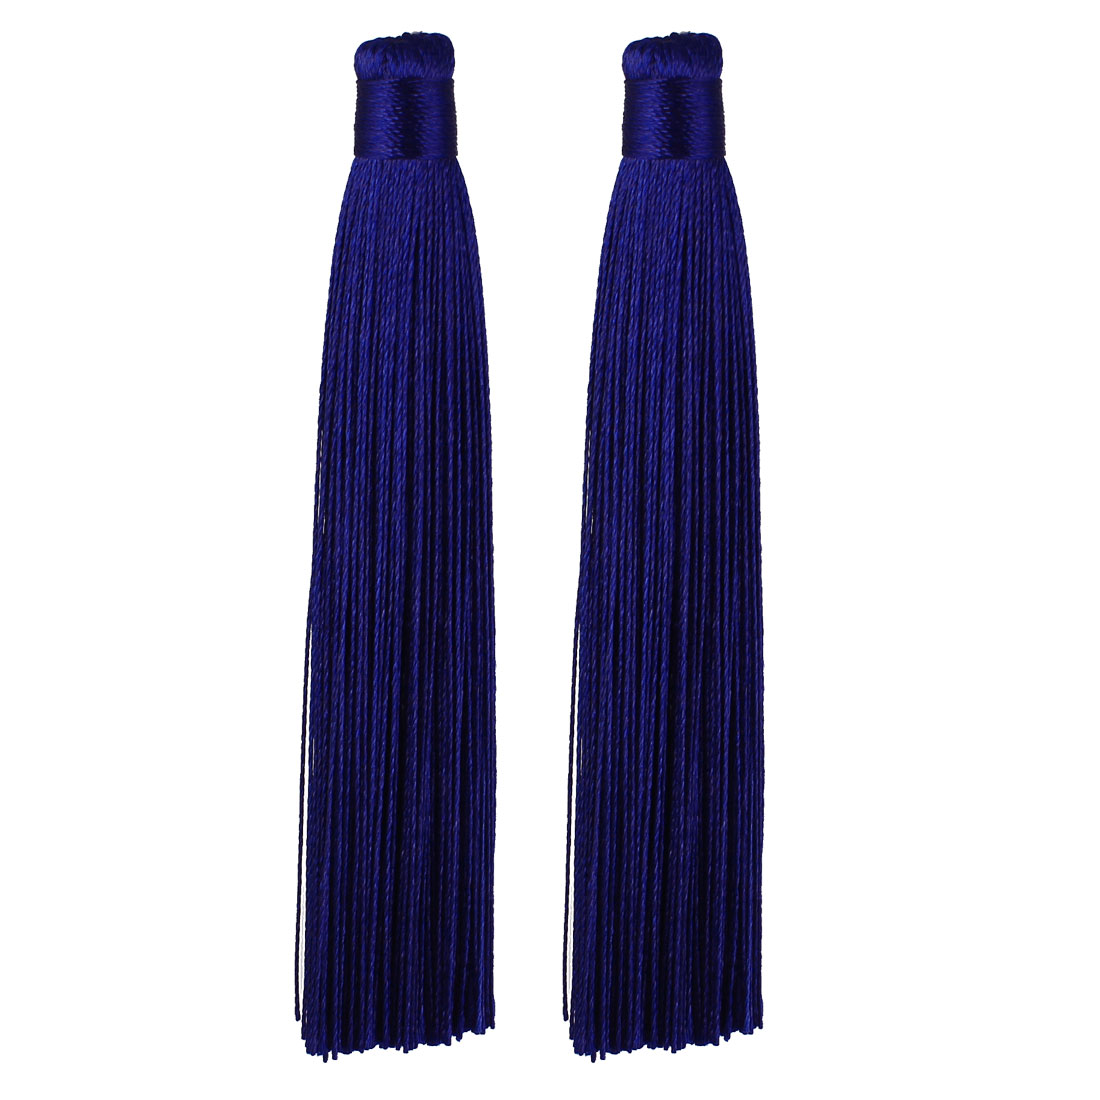 Chinese Knot Tassels Fringe Pendant DIY Jewelry Accessories Decoration Indigo Blue 12cm Length 2 Pcs